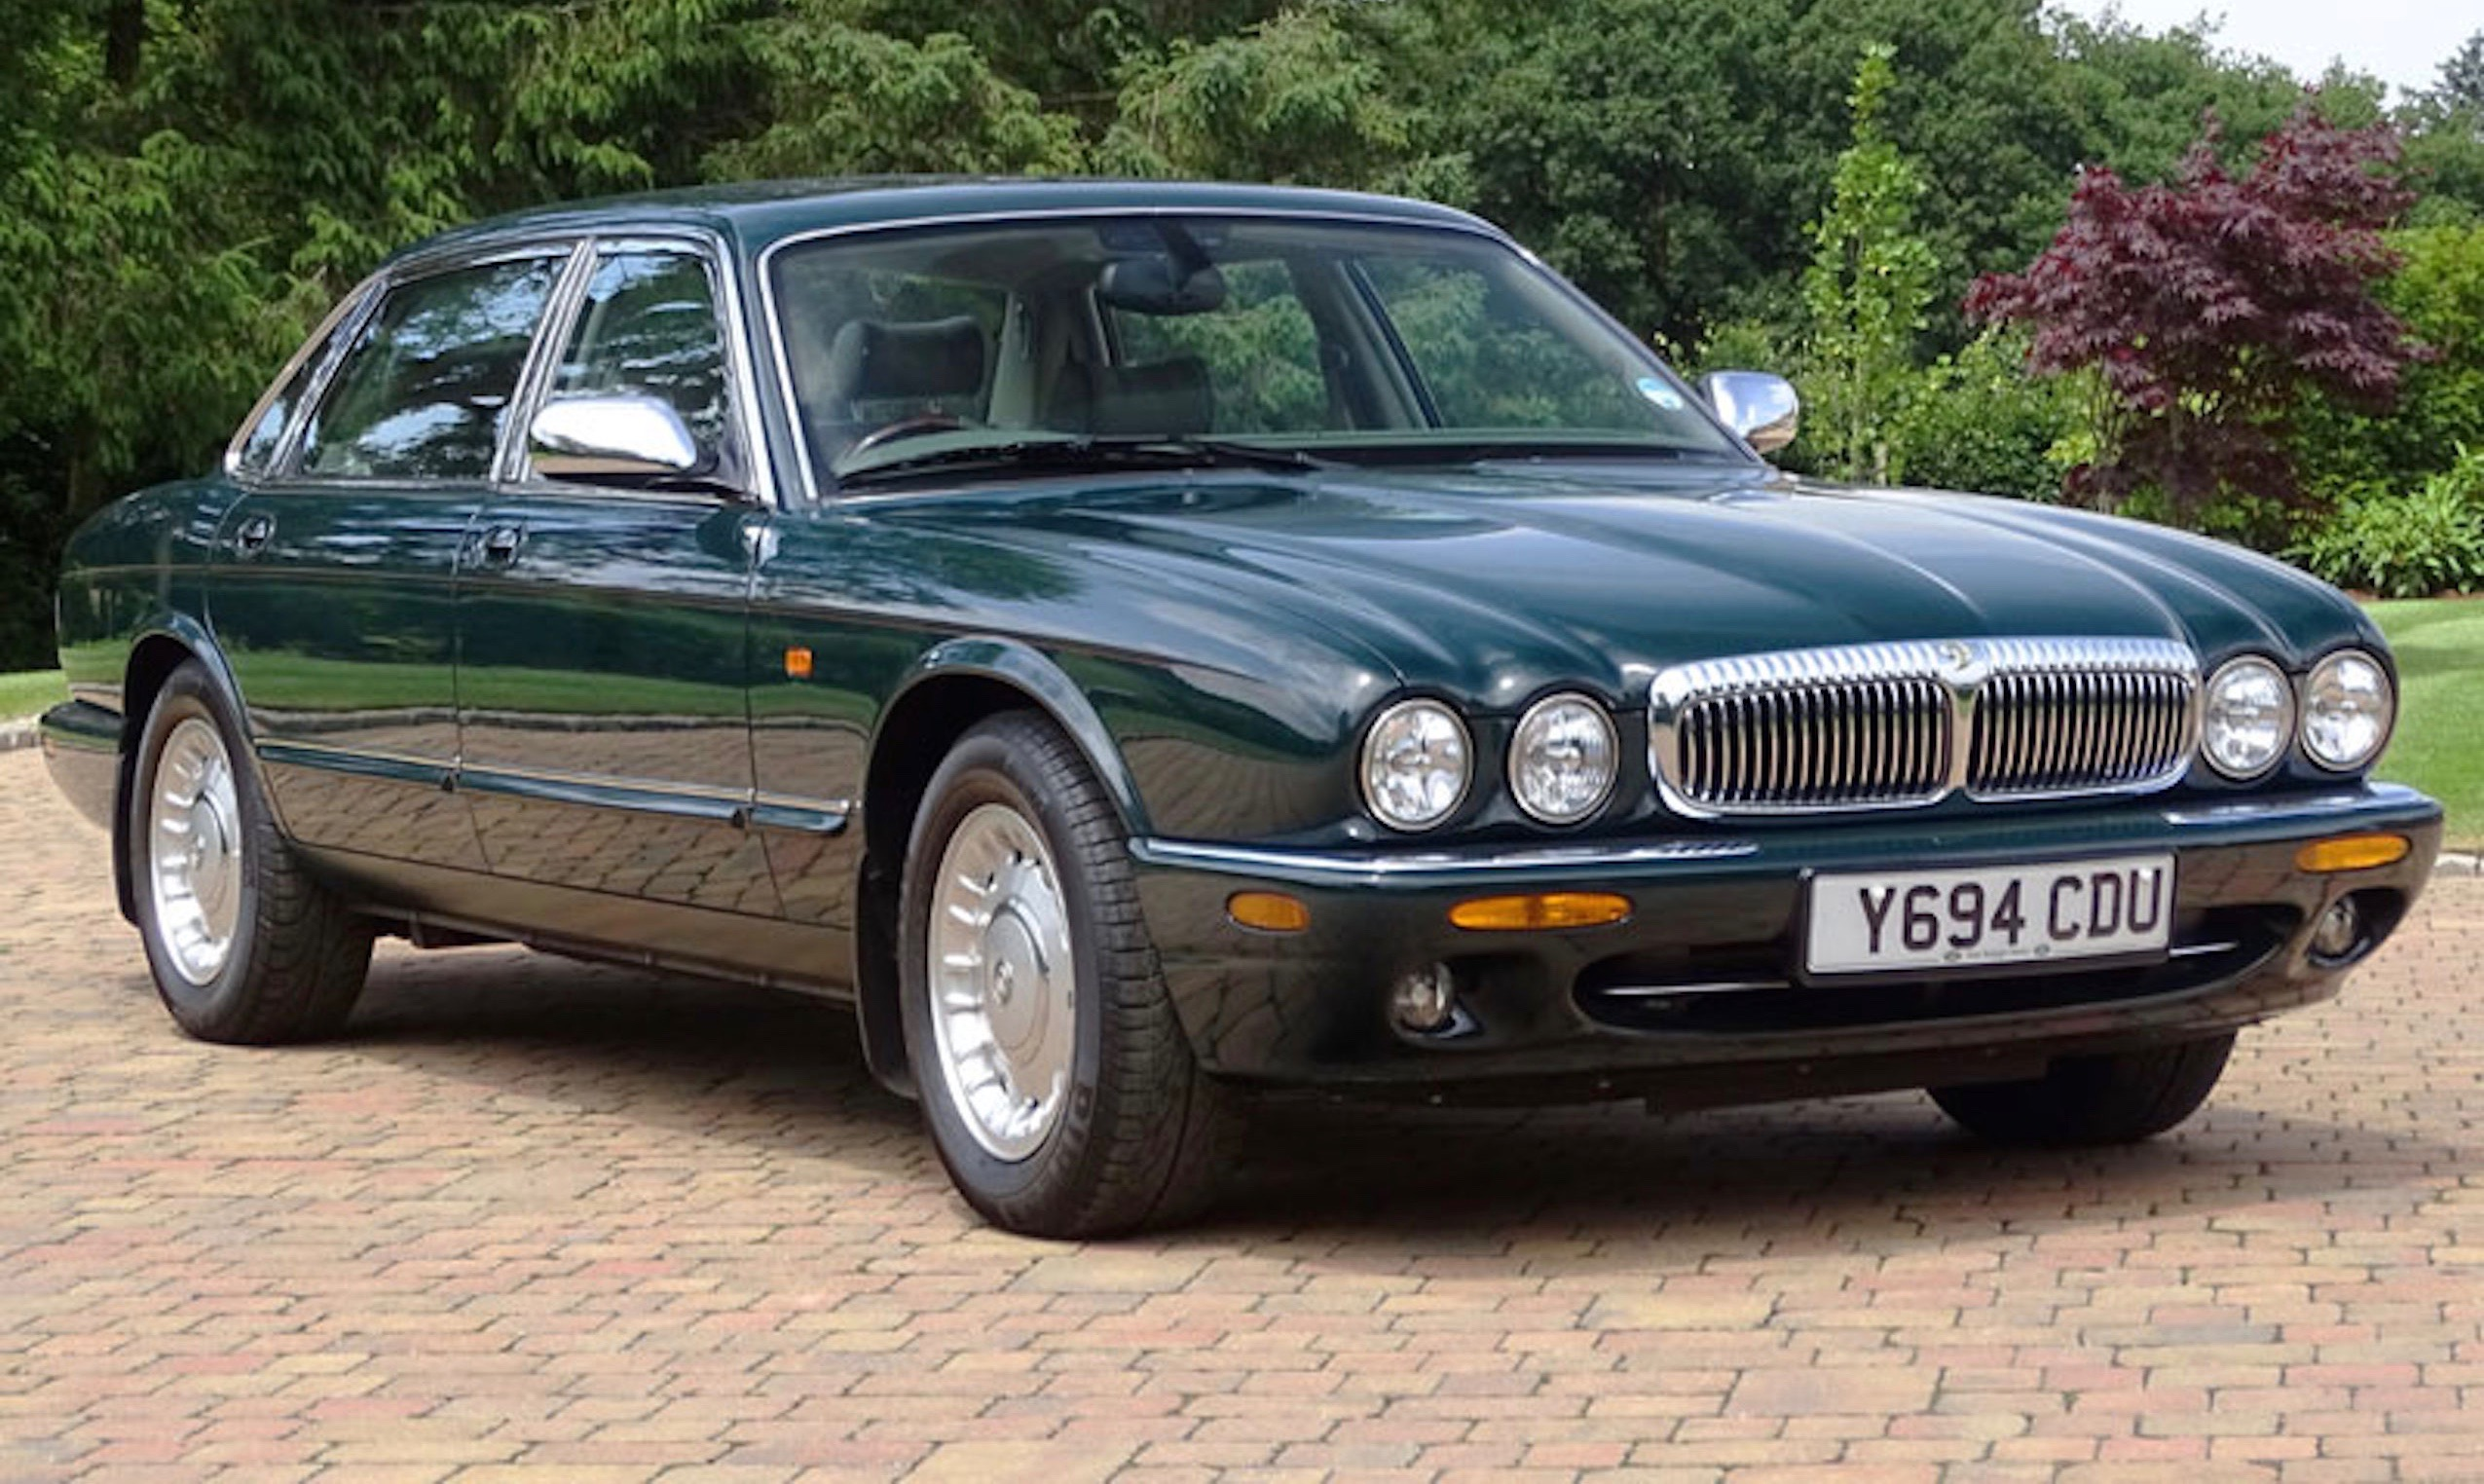 2001 Daimler Majestic was specially produced for Queen Elizabeth II | H&H Classics photo